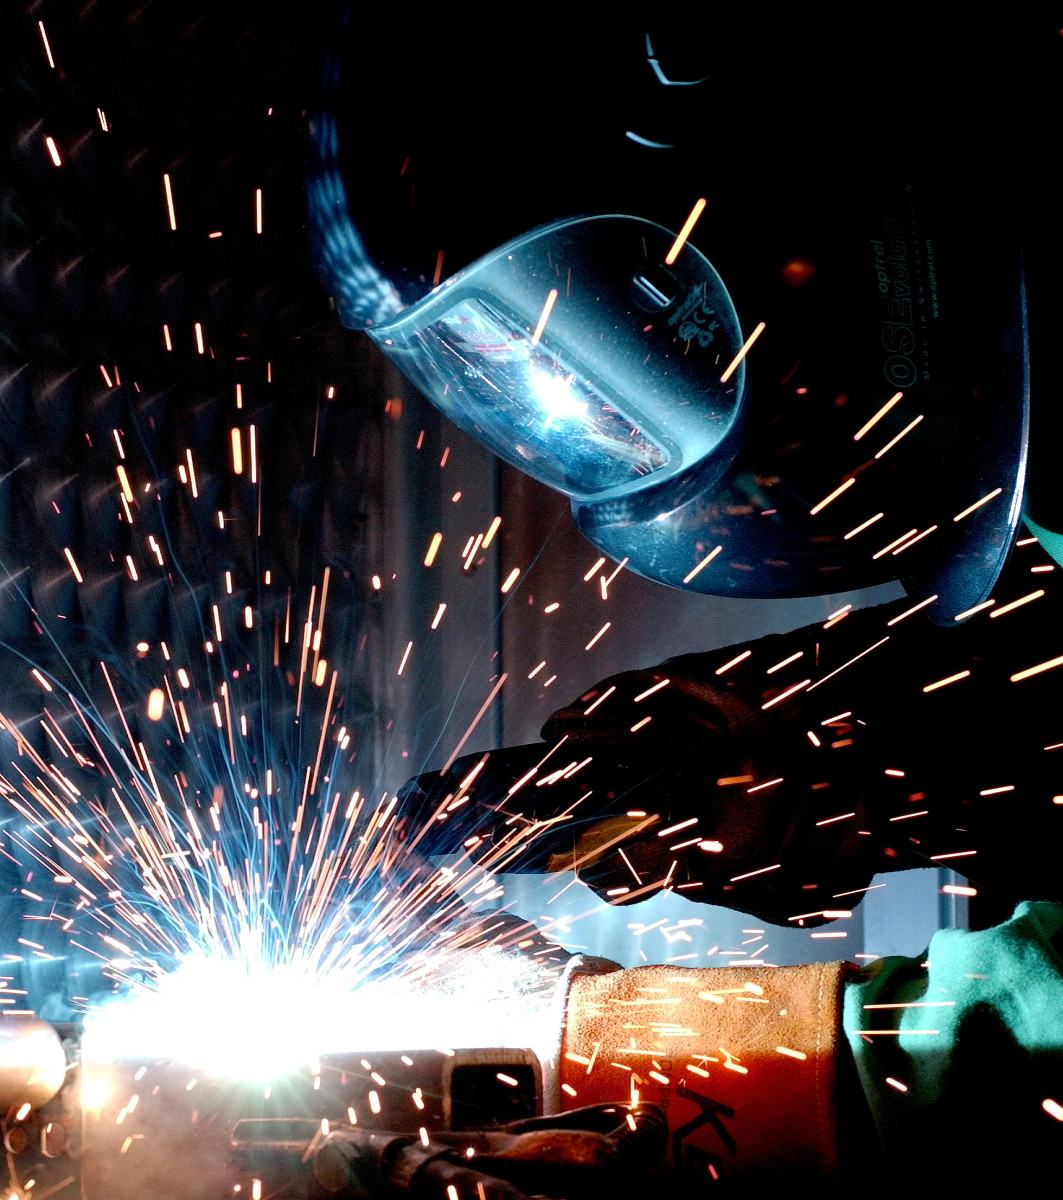 Gas tungsten arc welding or GTAW, also called TIG welding, is one of the few welding methods that work on almost any metal.